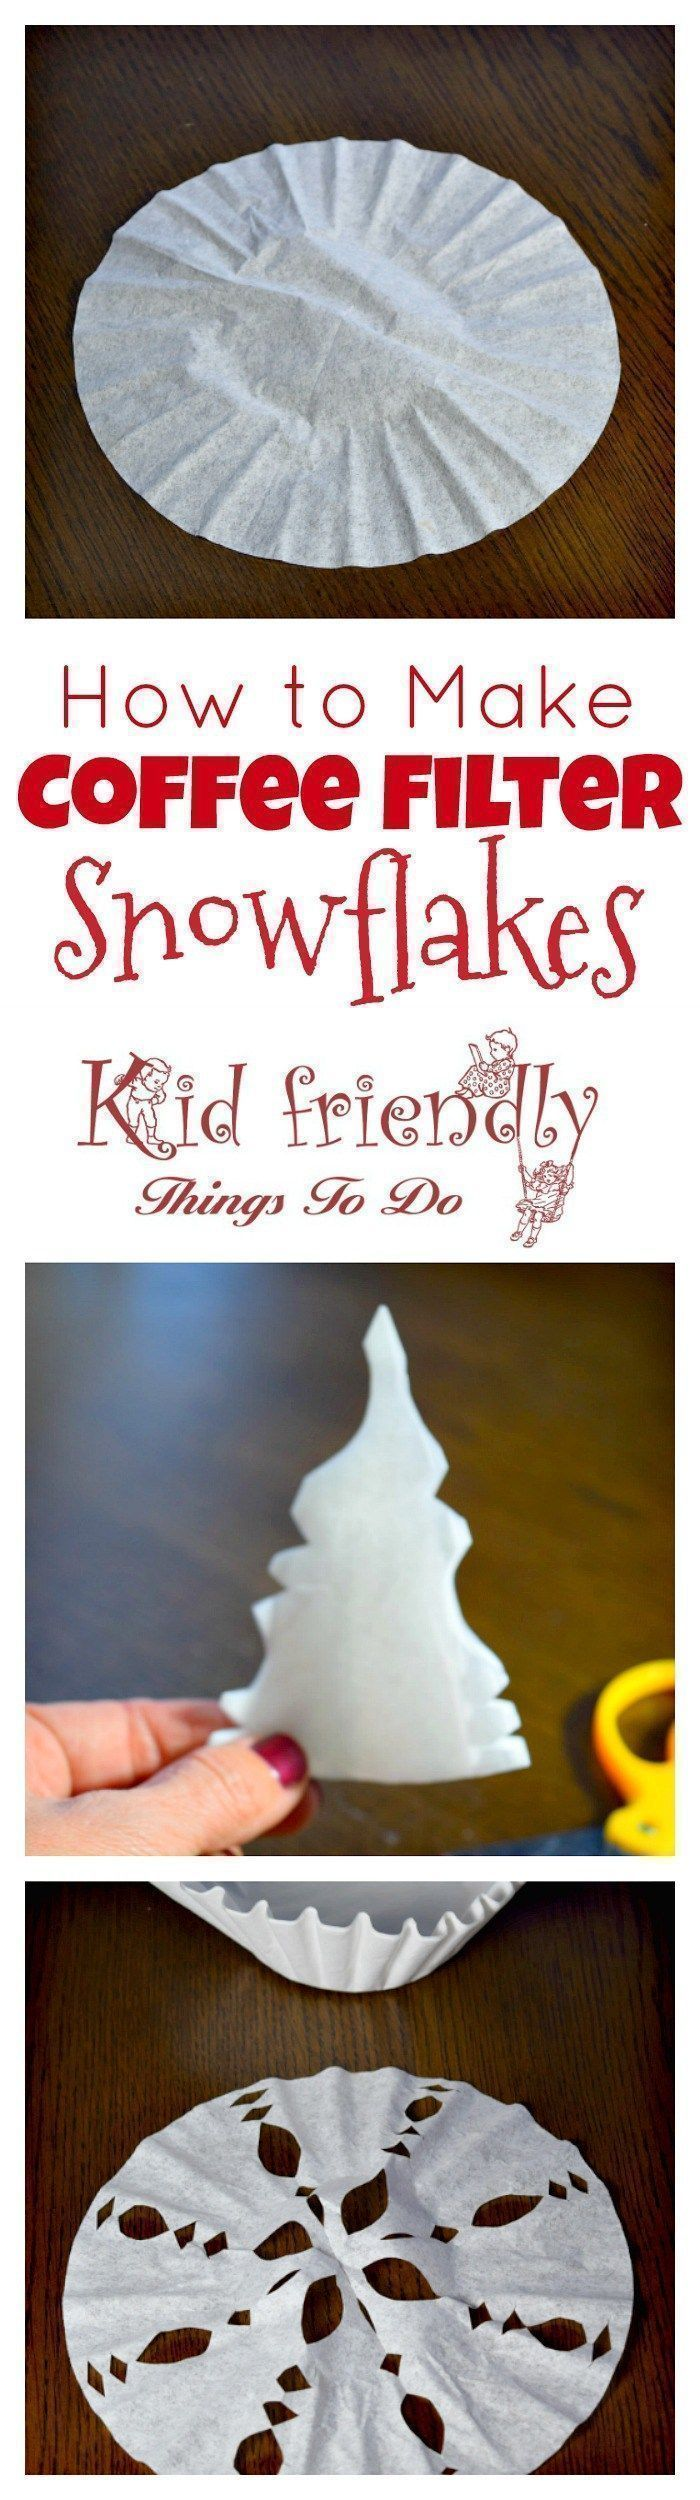 Great winter craft. These are easy to make with the kids! How to make a coffee filter snowflake. Fun to do on a snow day! www.kidfriendlyth...